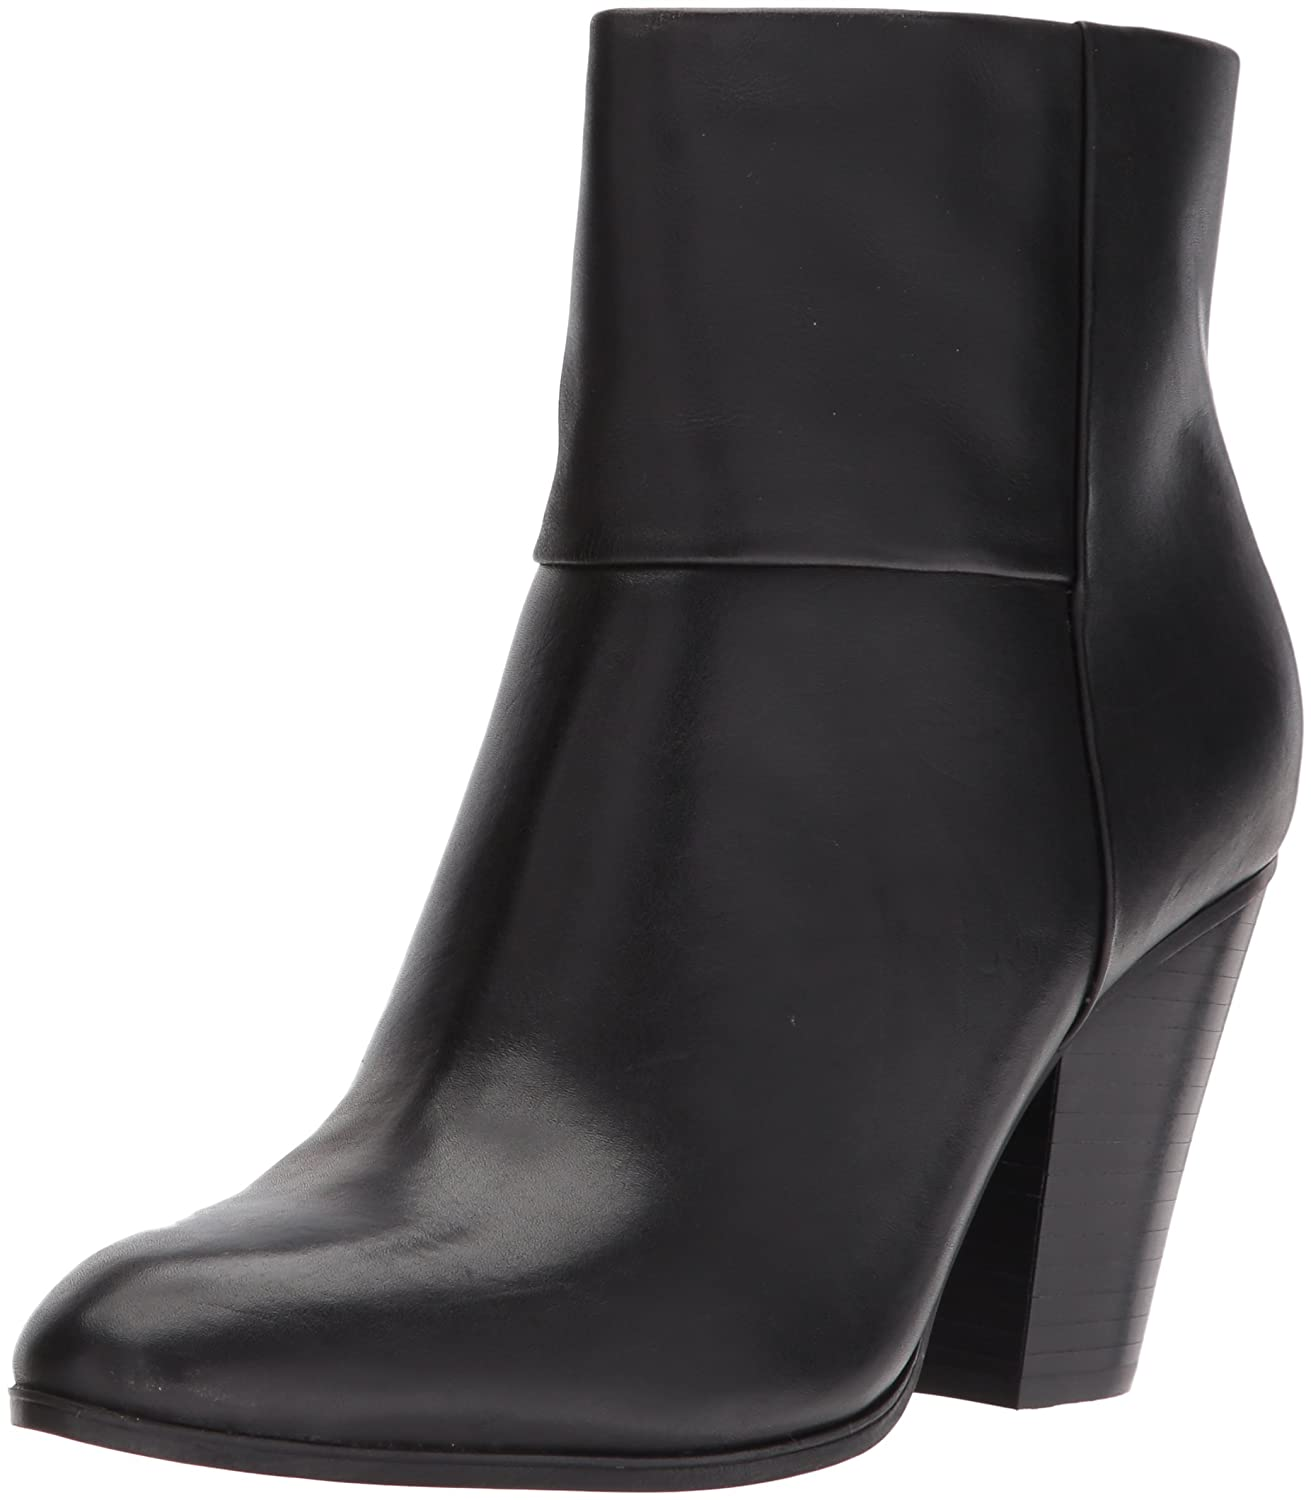 Nine West Women's Hollie Leather Ankle Boot B071S37H53 11 B(M) US|Black Leather